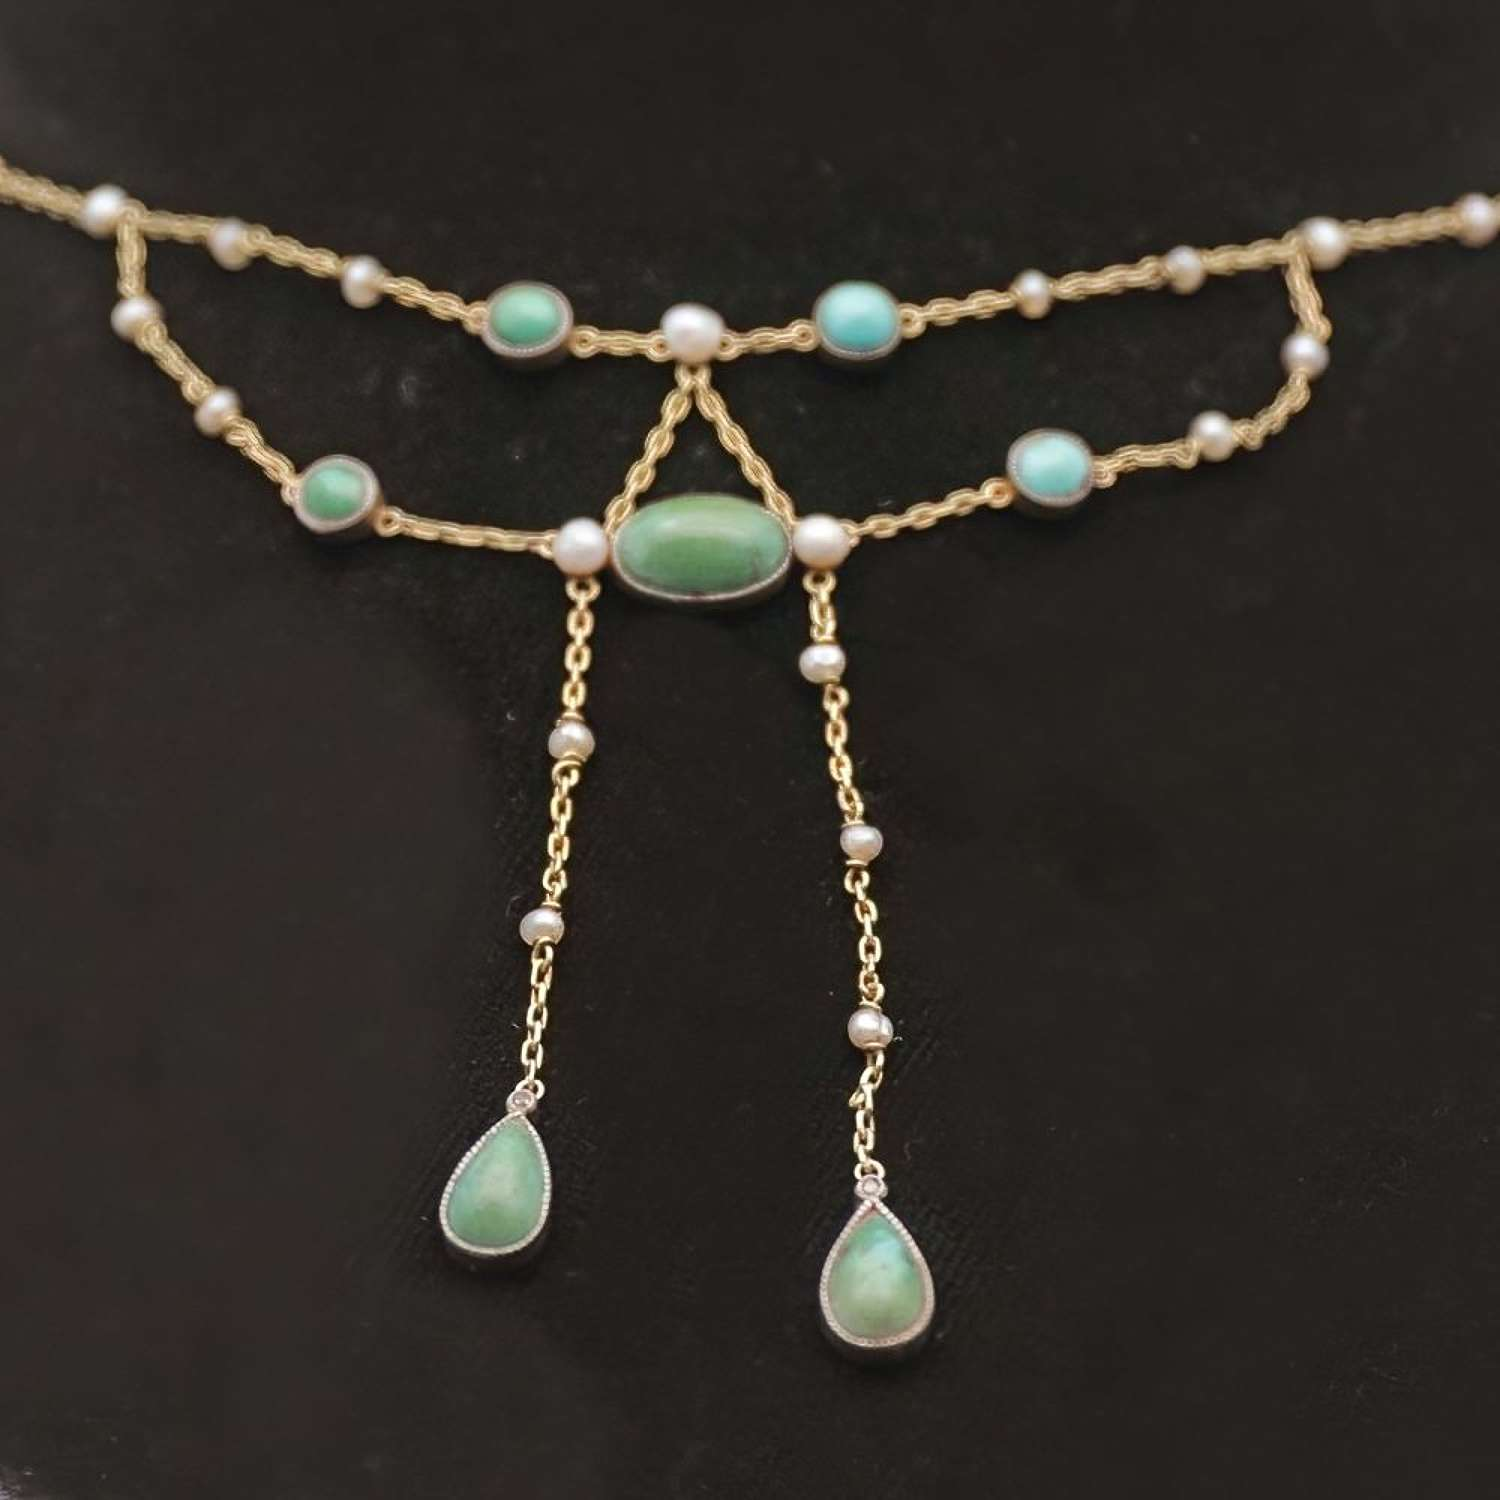 Victorian 18ct negligee necklace